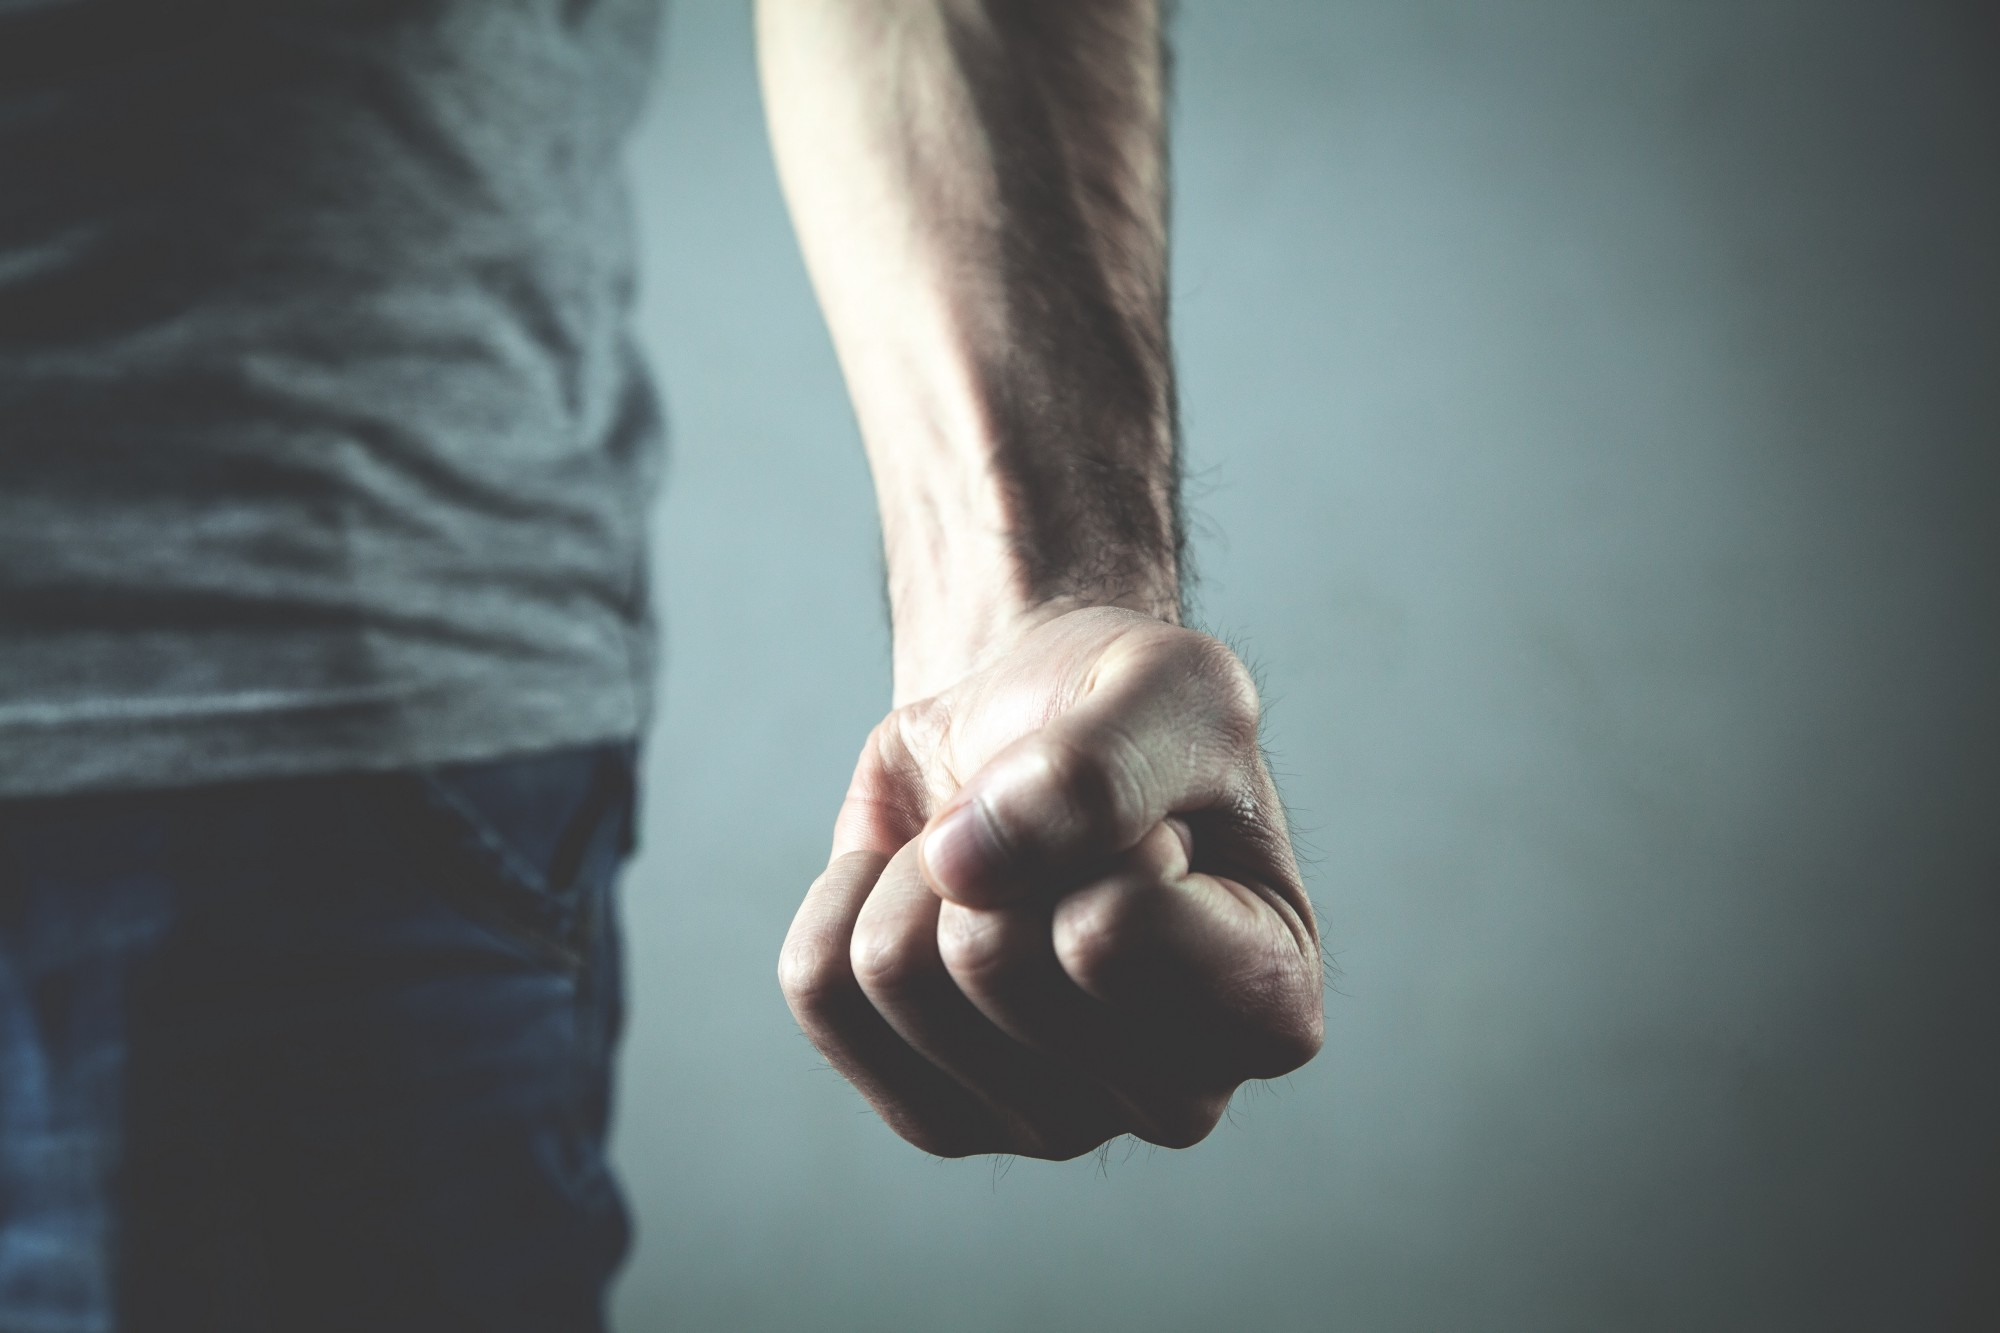 This is an image of a man standing with his left arm extended down and his left fist clenched in anger. The anger shows in the bulging veins of his arm.